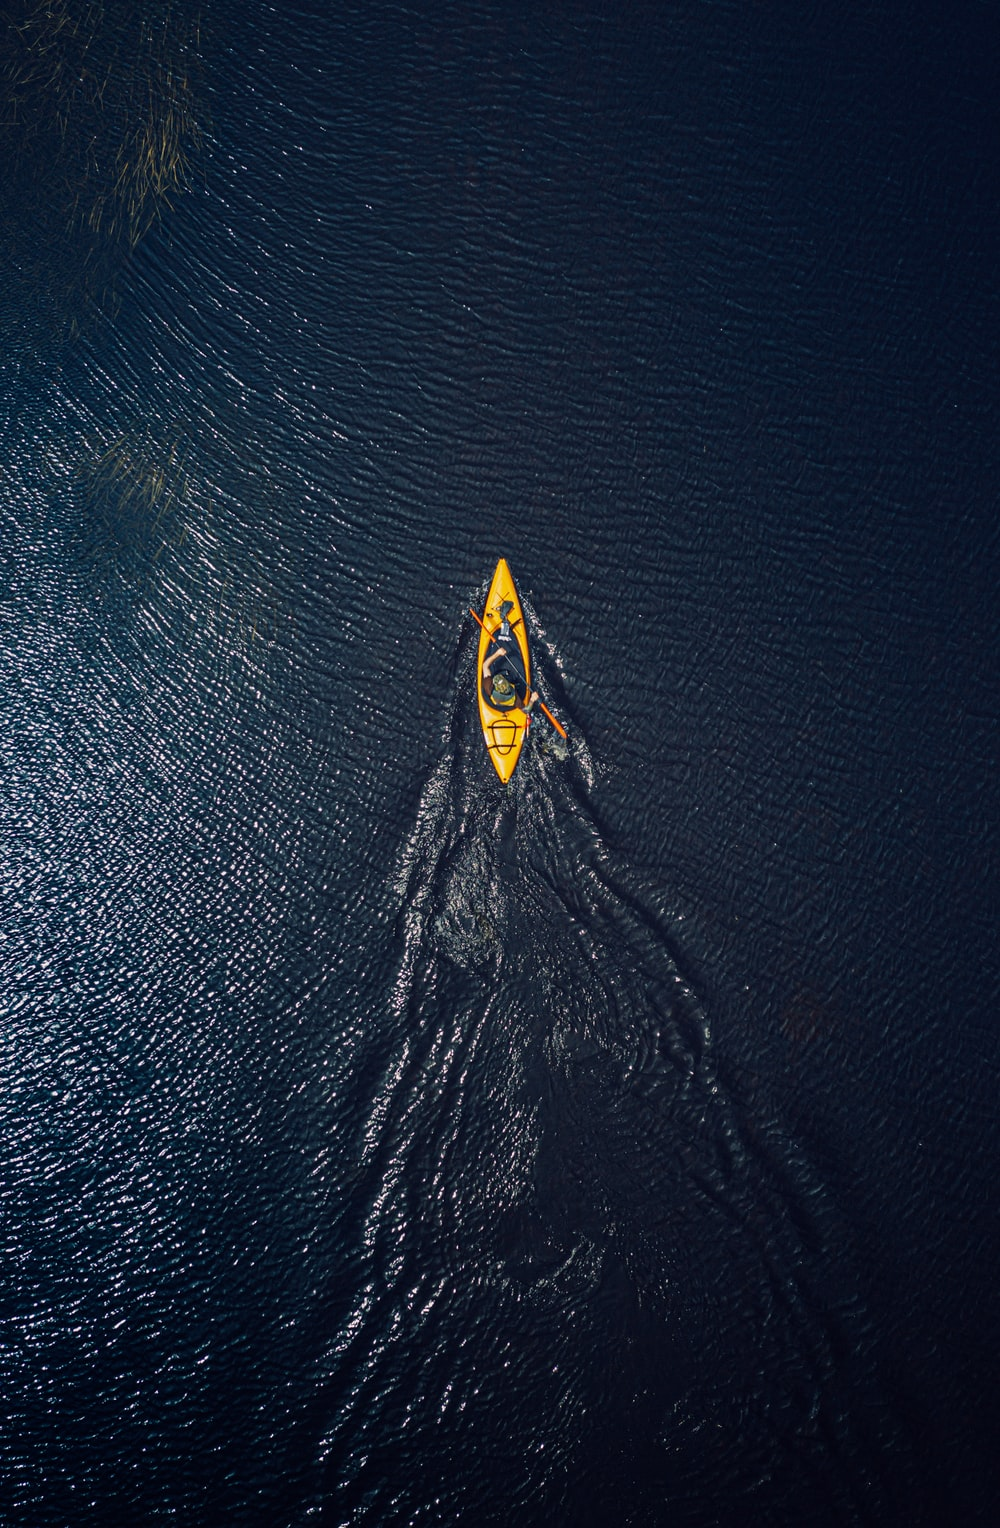 yellow and black surfboard on body of water